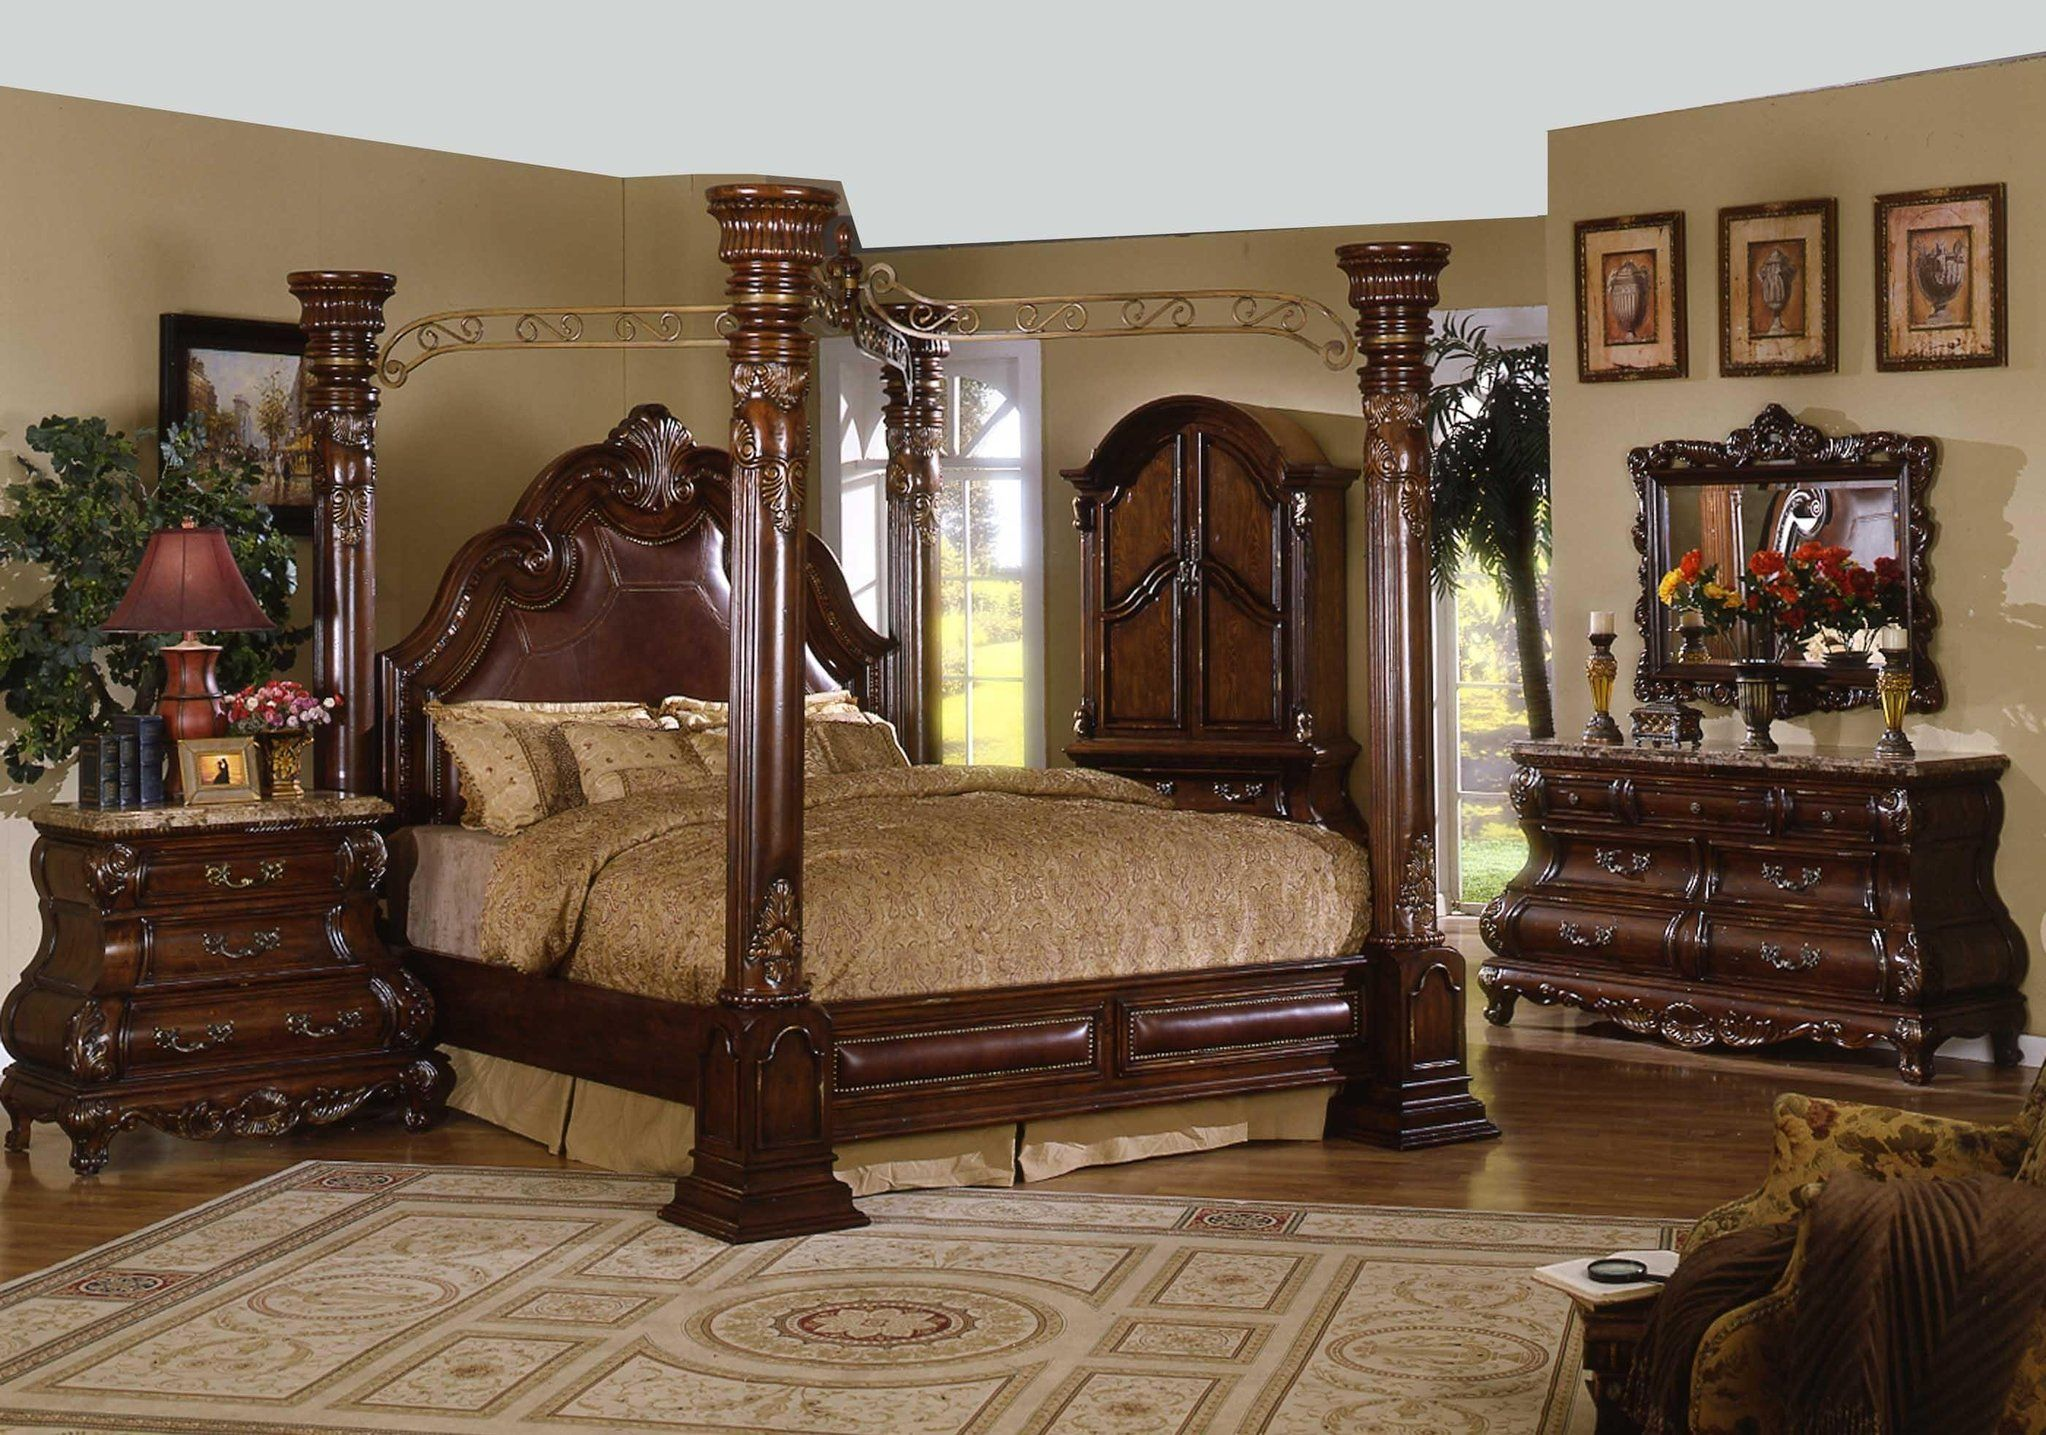 Magnificent cal king bedroom sets with top quality wooden